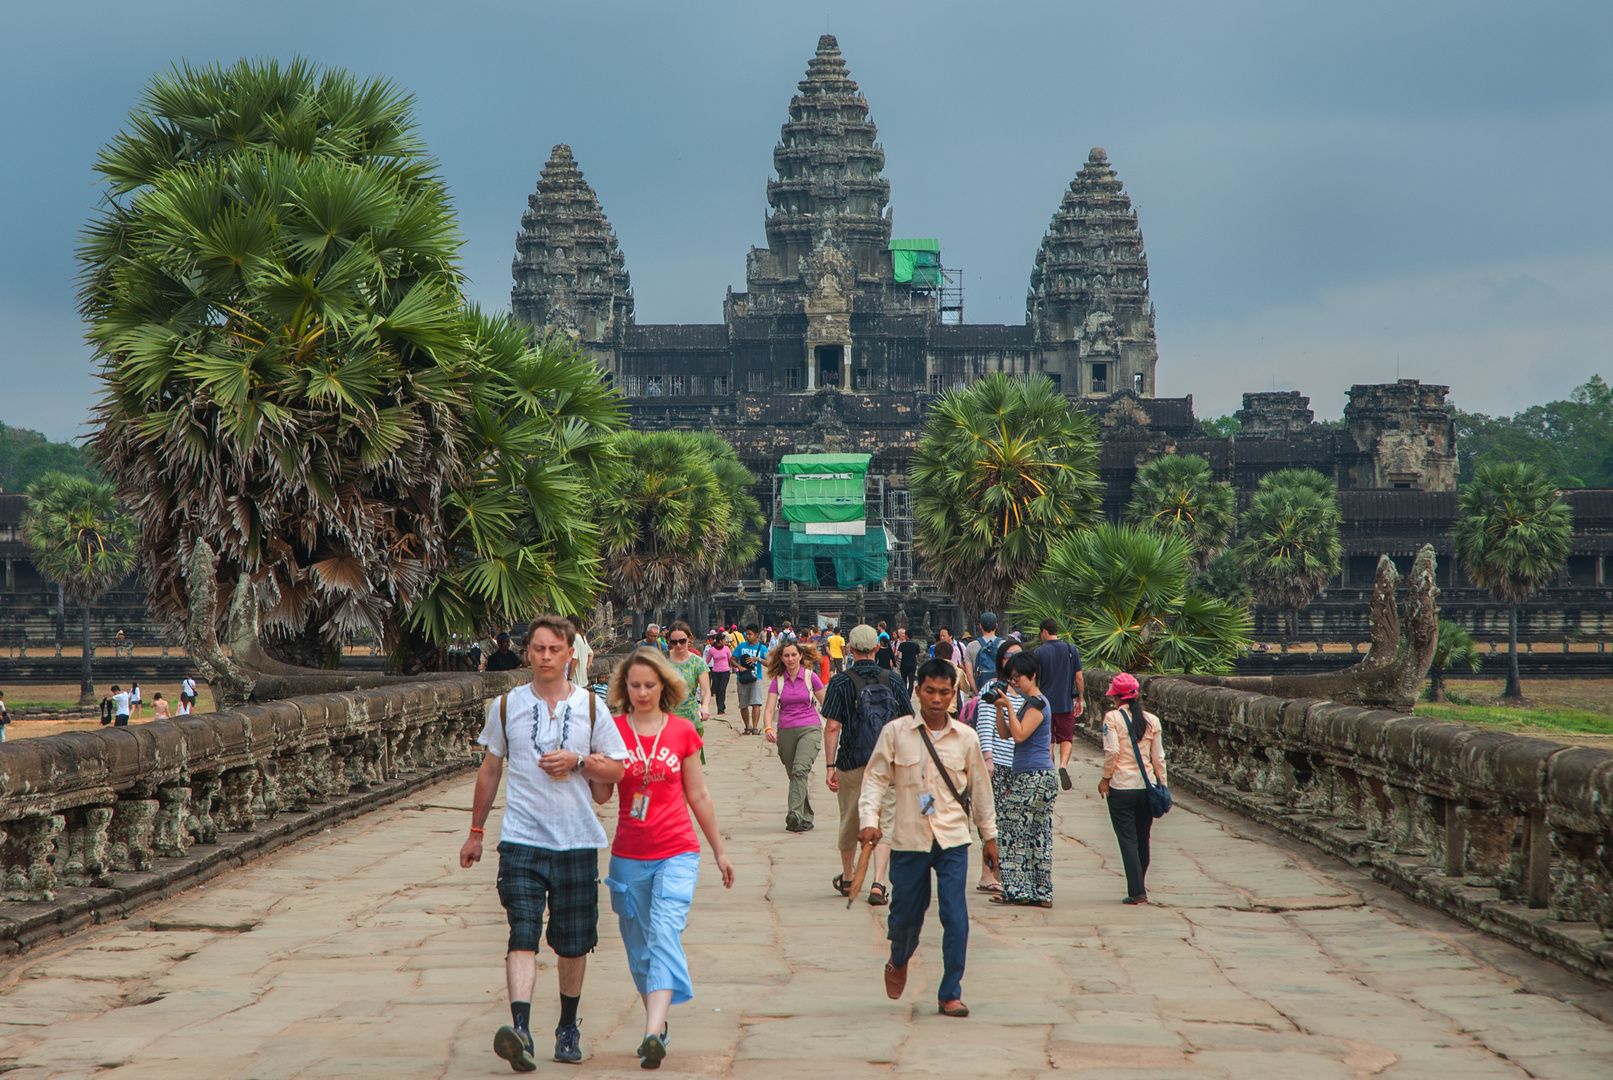 Walk to the Angkor Wat complex